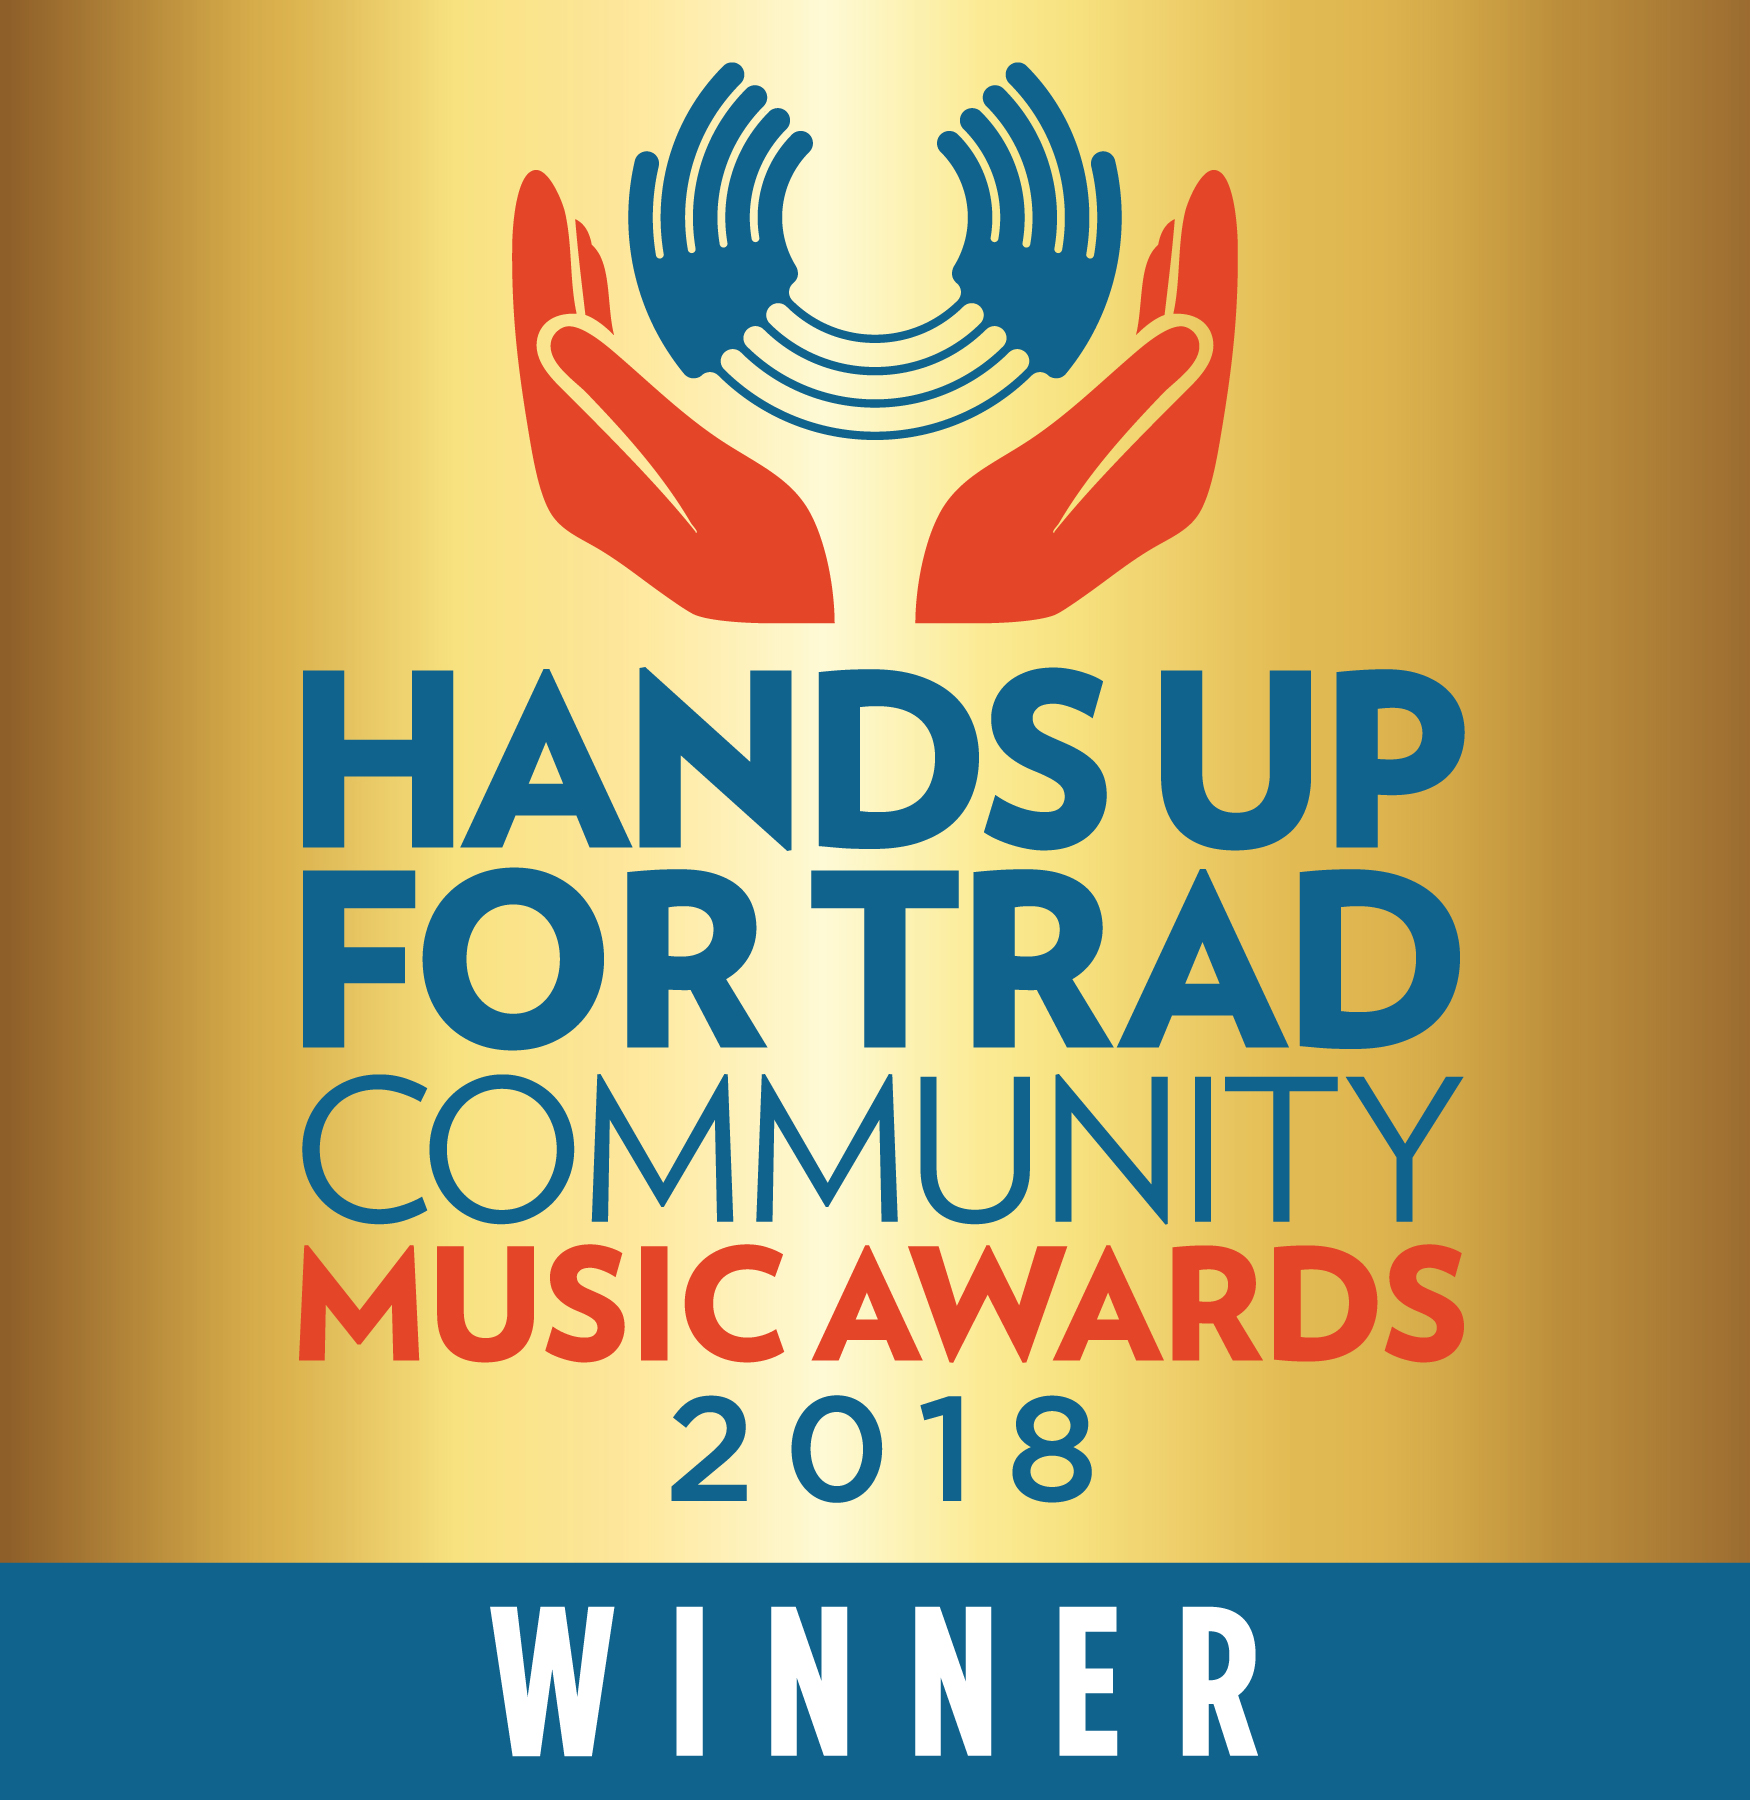 Voted Scotland's Community Music Organisation of the Year 2018